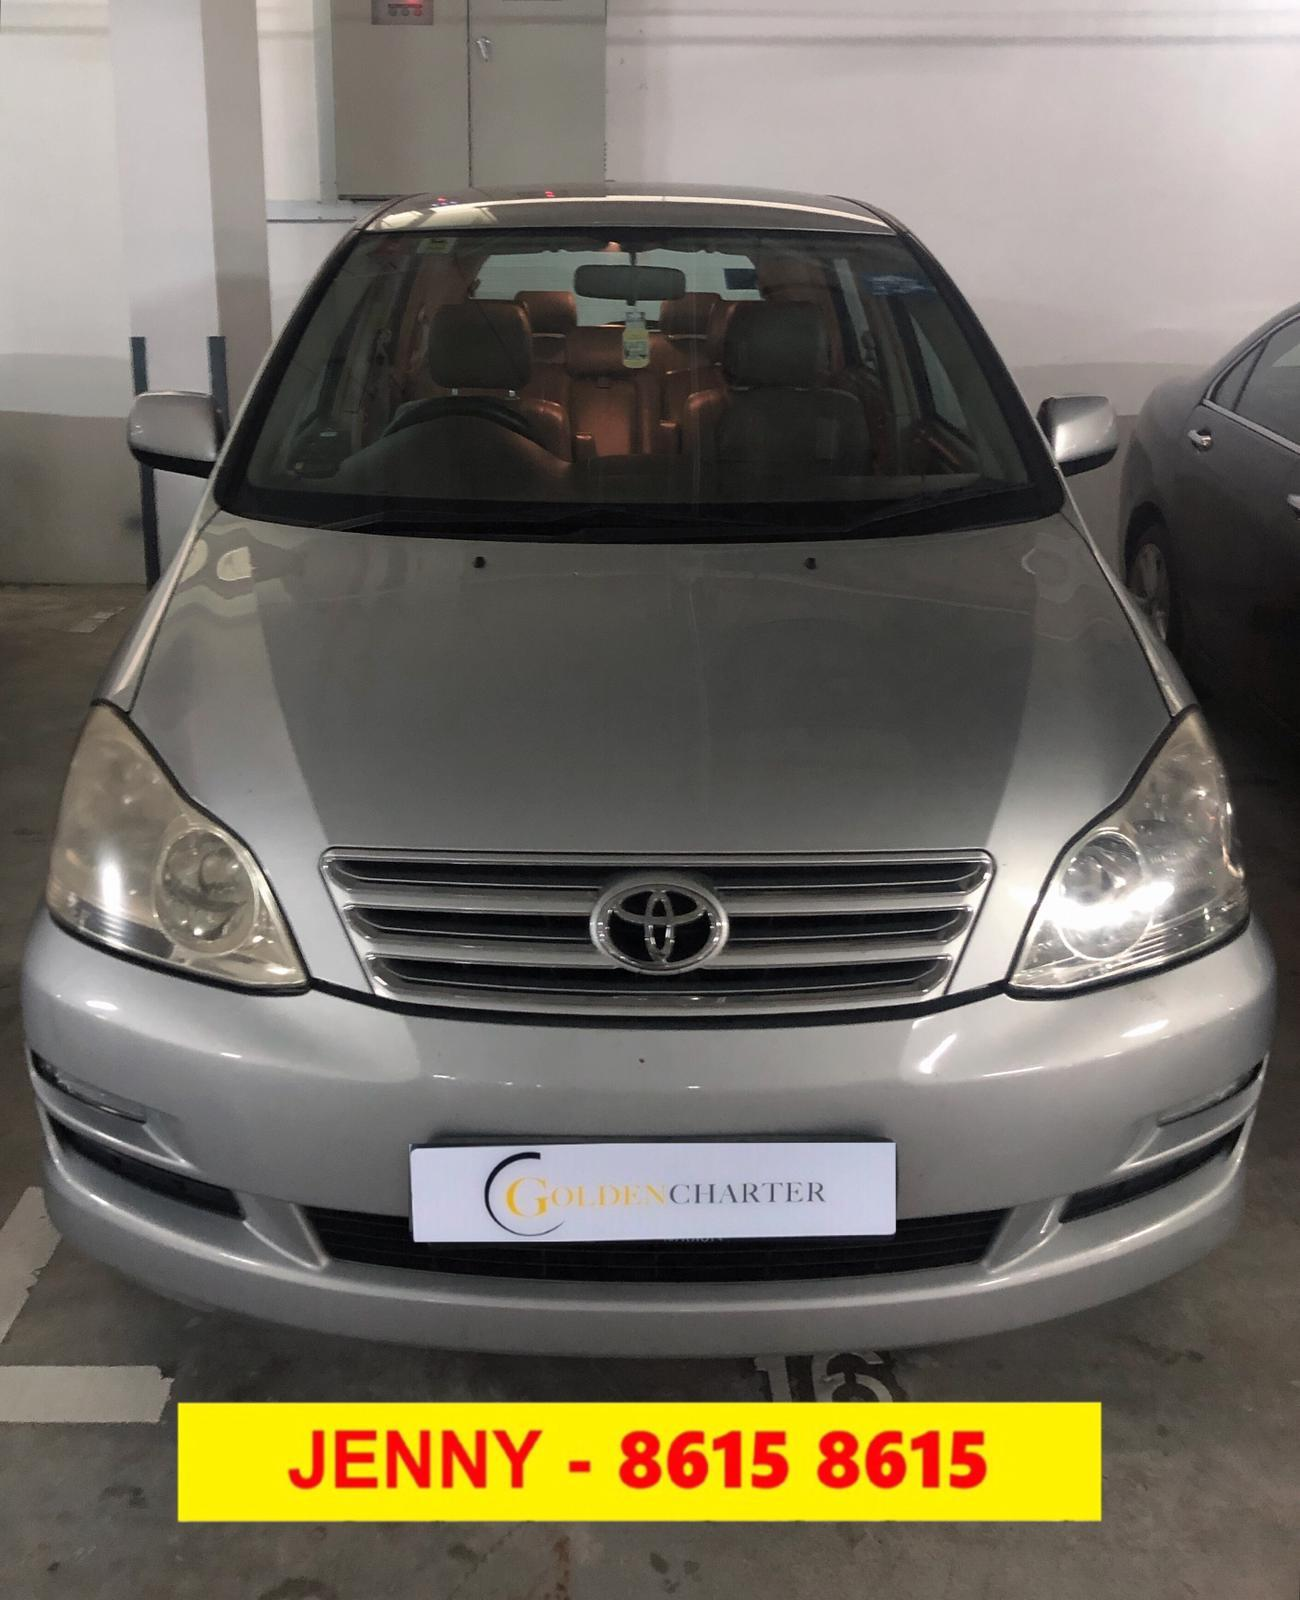 ToYota Picnic 2.0a WISH 1.8 STREAM 1.8 PRESAGE SIENTA  For Rent Lease To Own PHV Grab Rental Gojek Or Personal Use Low price and Cheap